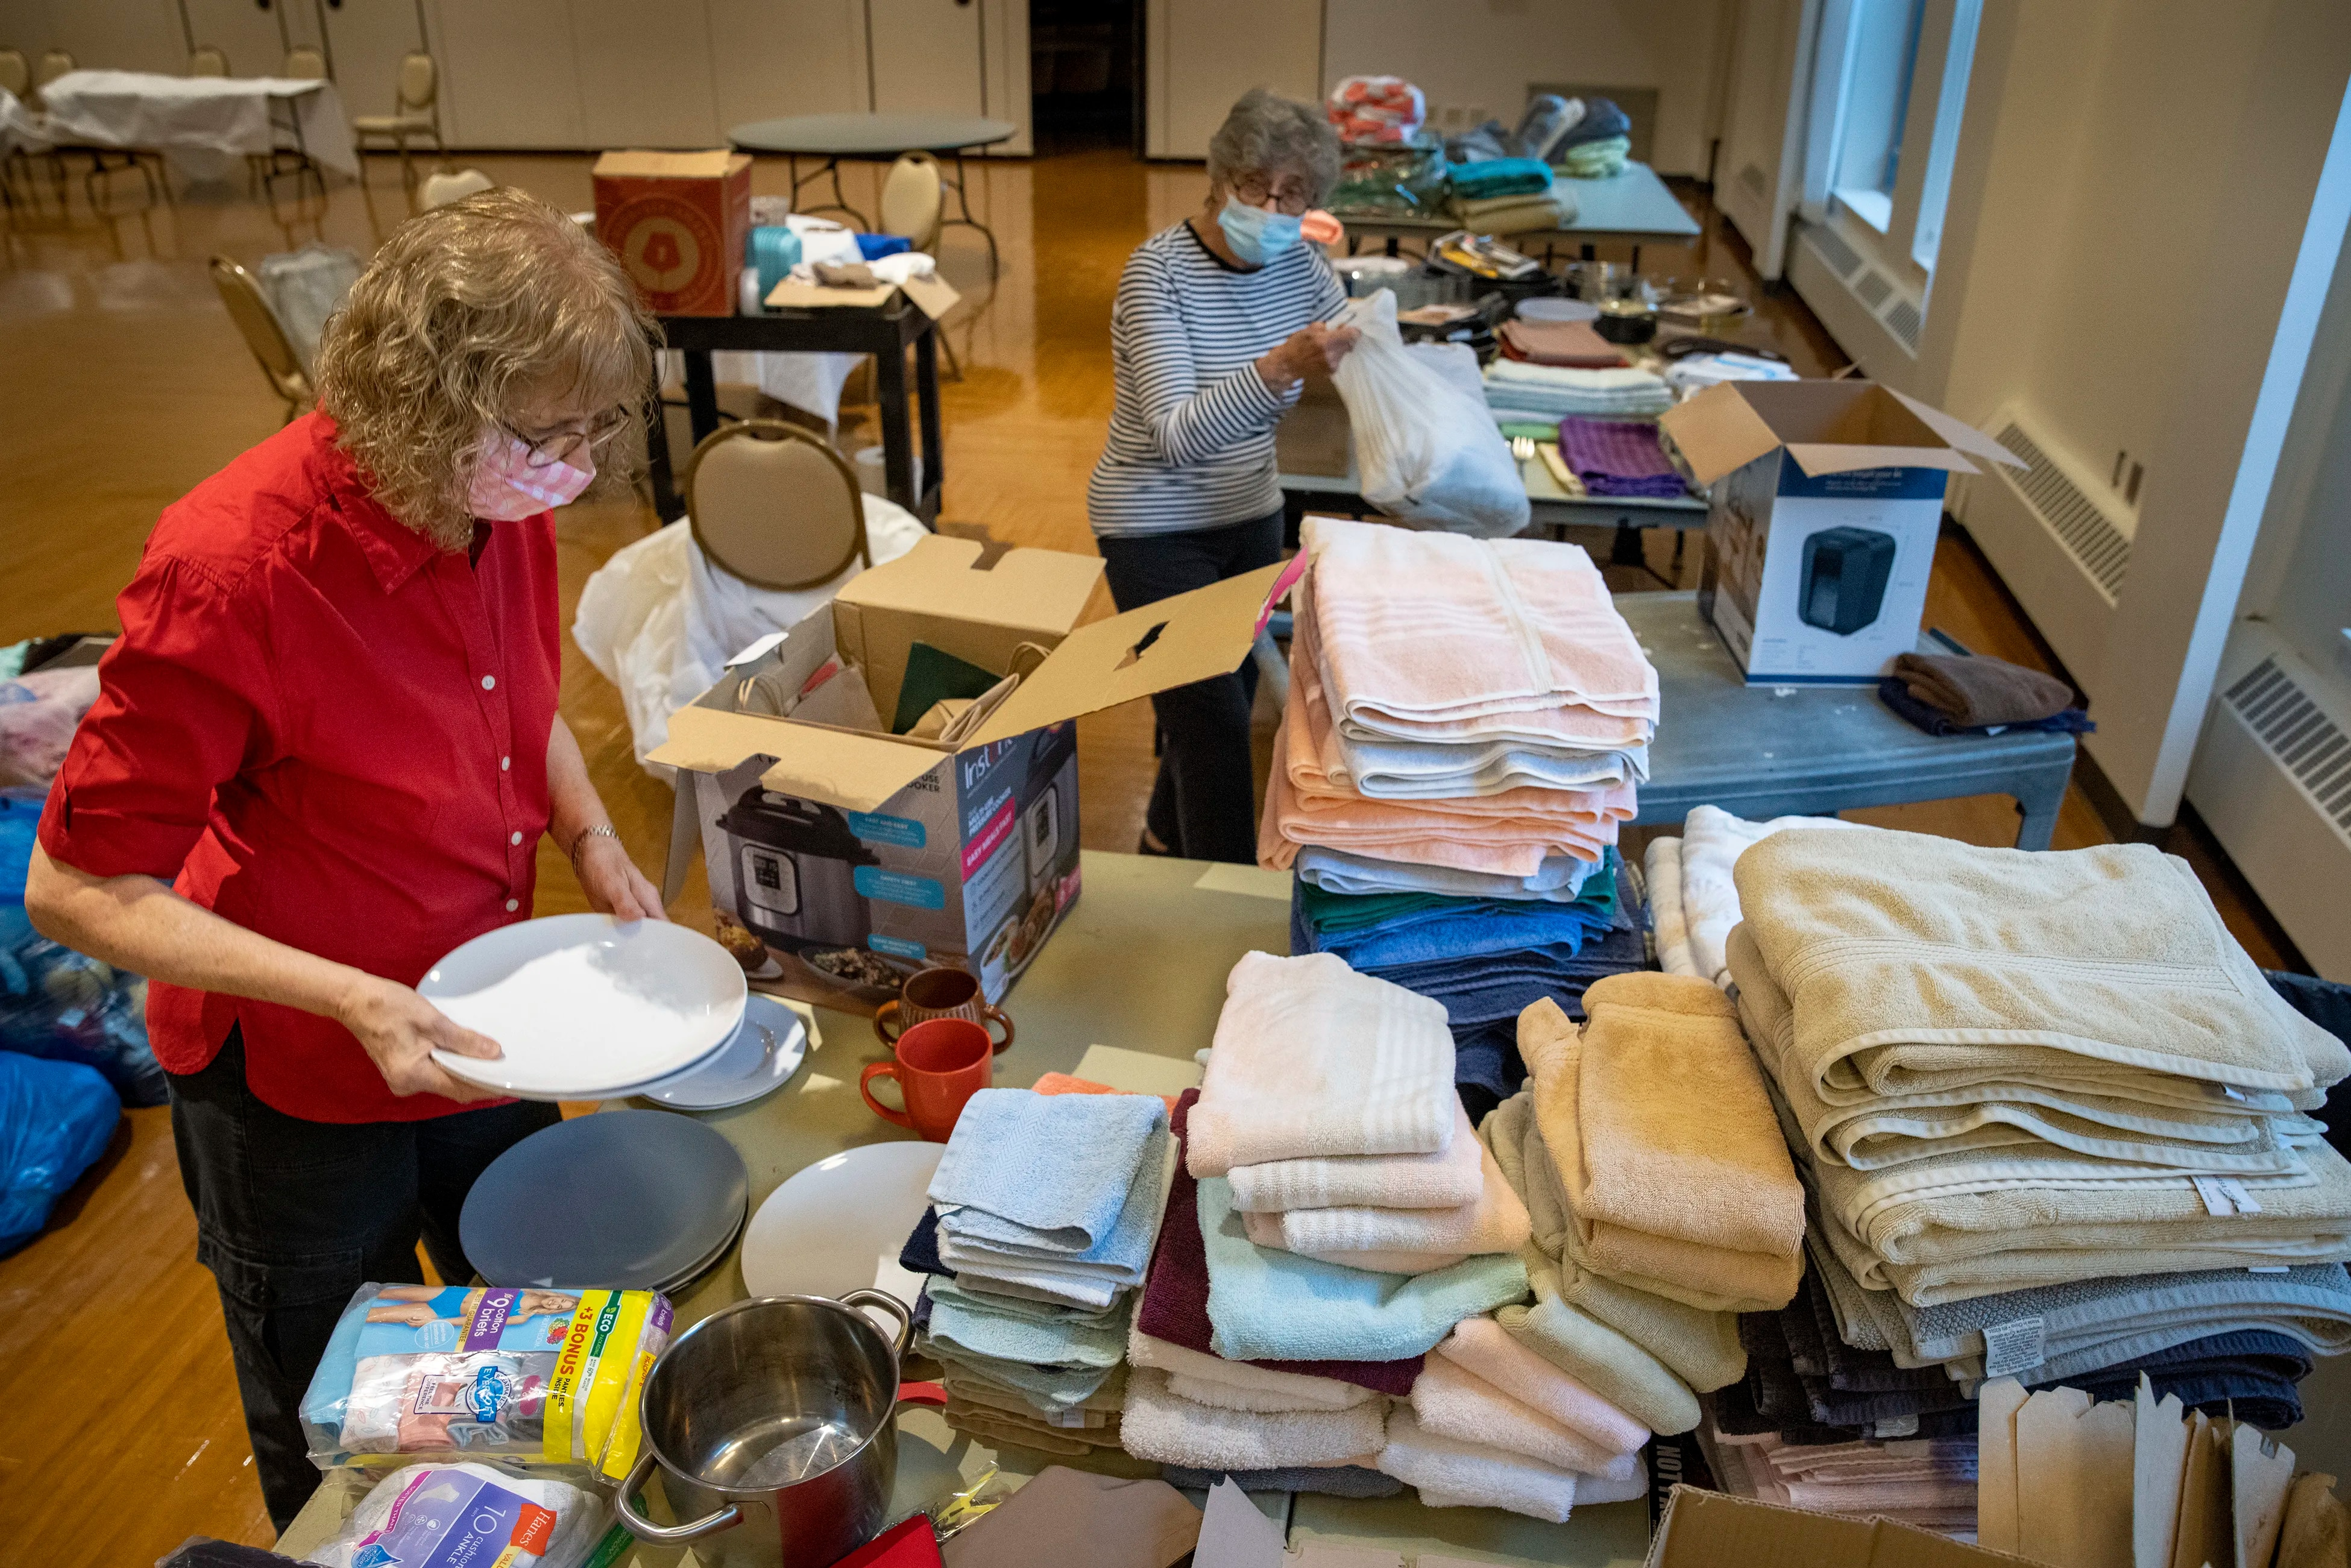 Linda Brock (left) and Adele Margulies organizing donations to HIAS Pennsylvania on Thursday afternoon at the Main Line Reform Temple in Wynnewood.